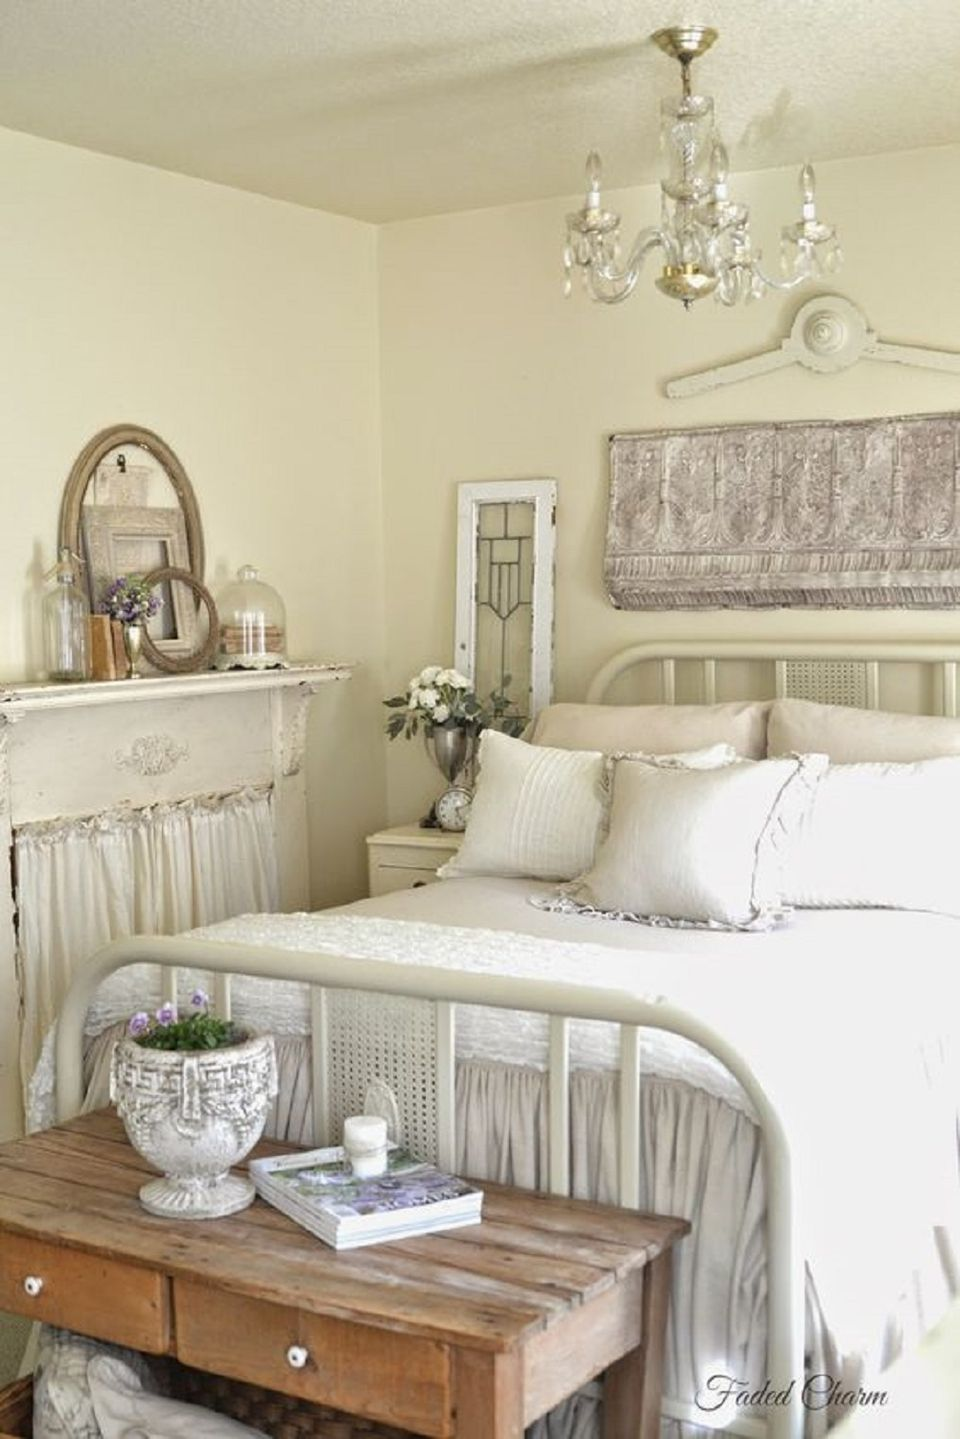 French country shabby bedroom. French Country Bedroom Decorating Ideas and Photos